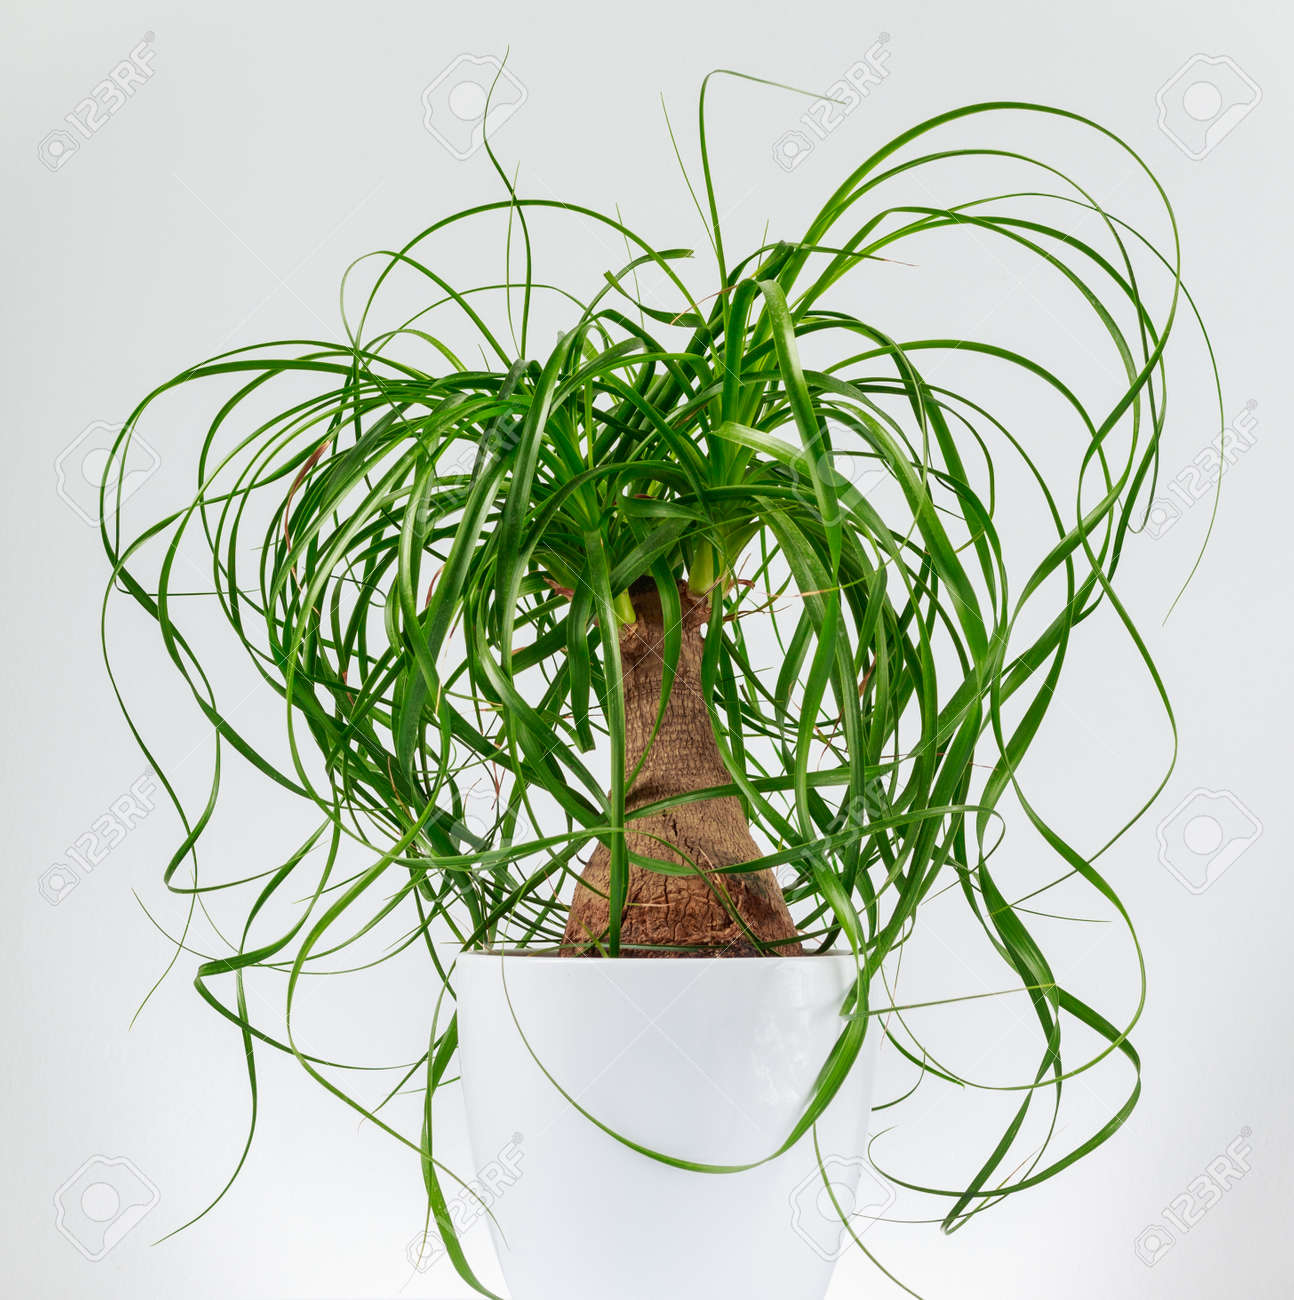 Isolated Close-up Image Of A Ponytail Palm Tree (Beaucarnea ... on indoor pony tail plant, corn house plant, indoor palms low light, wicker basket with silk areca palm plant, ponytail bonsai plant, elephant foot house plant,